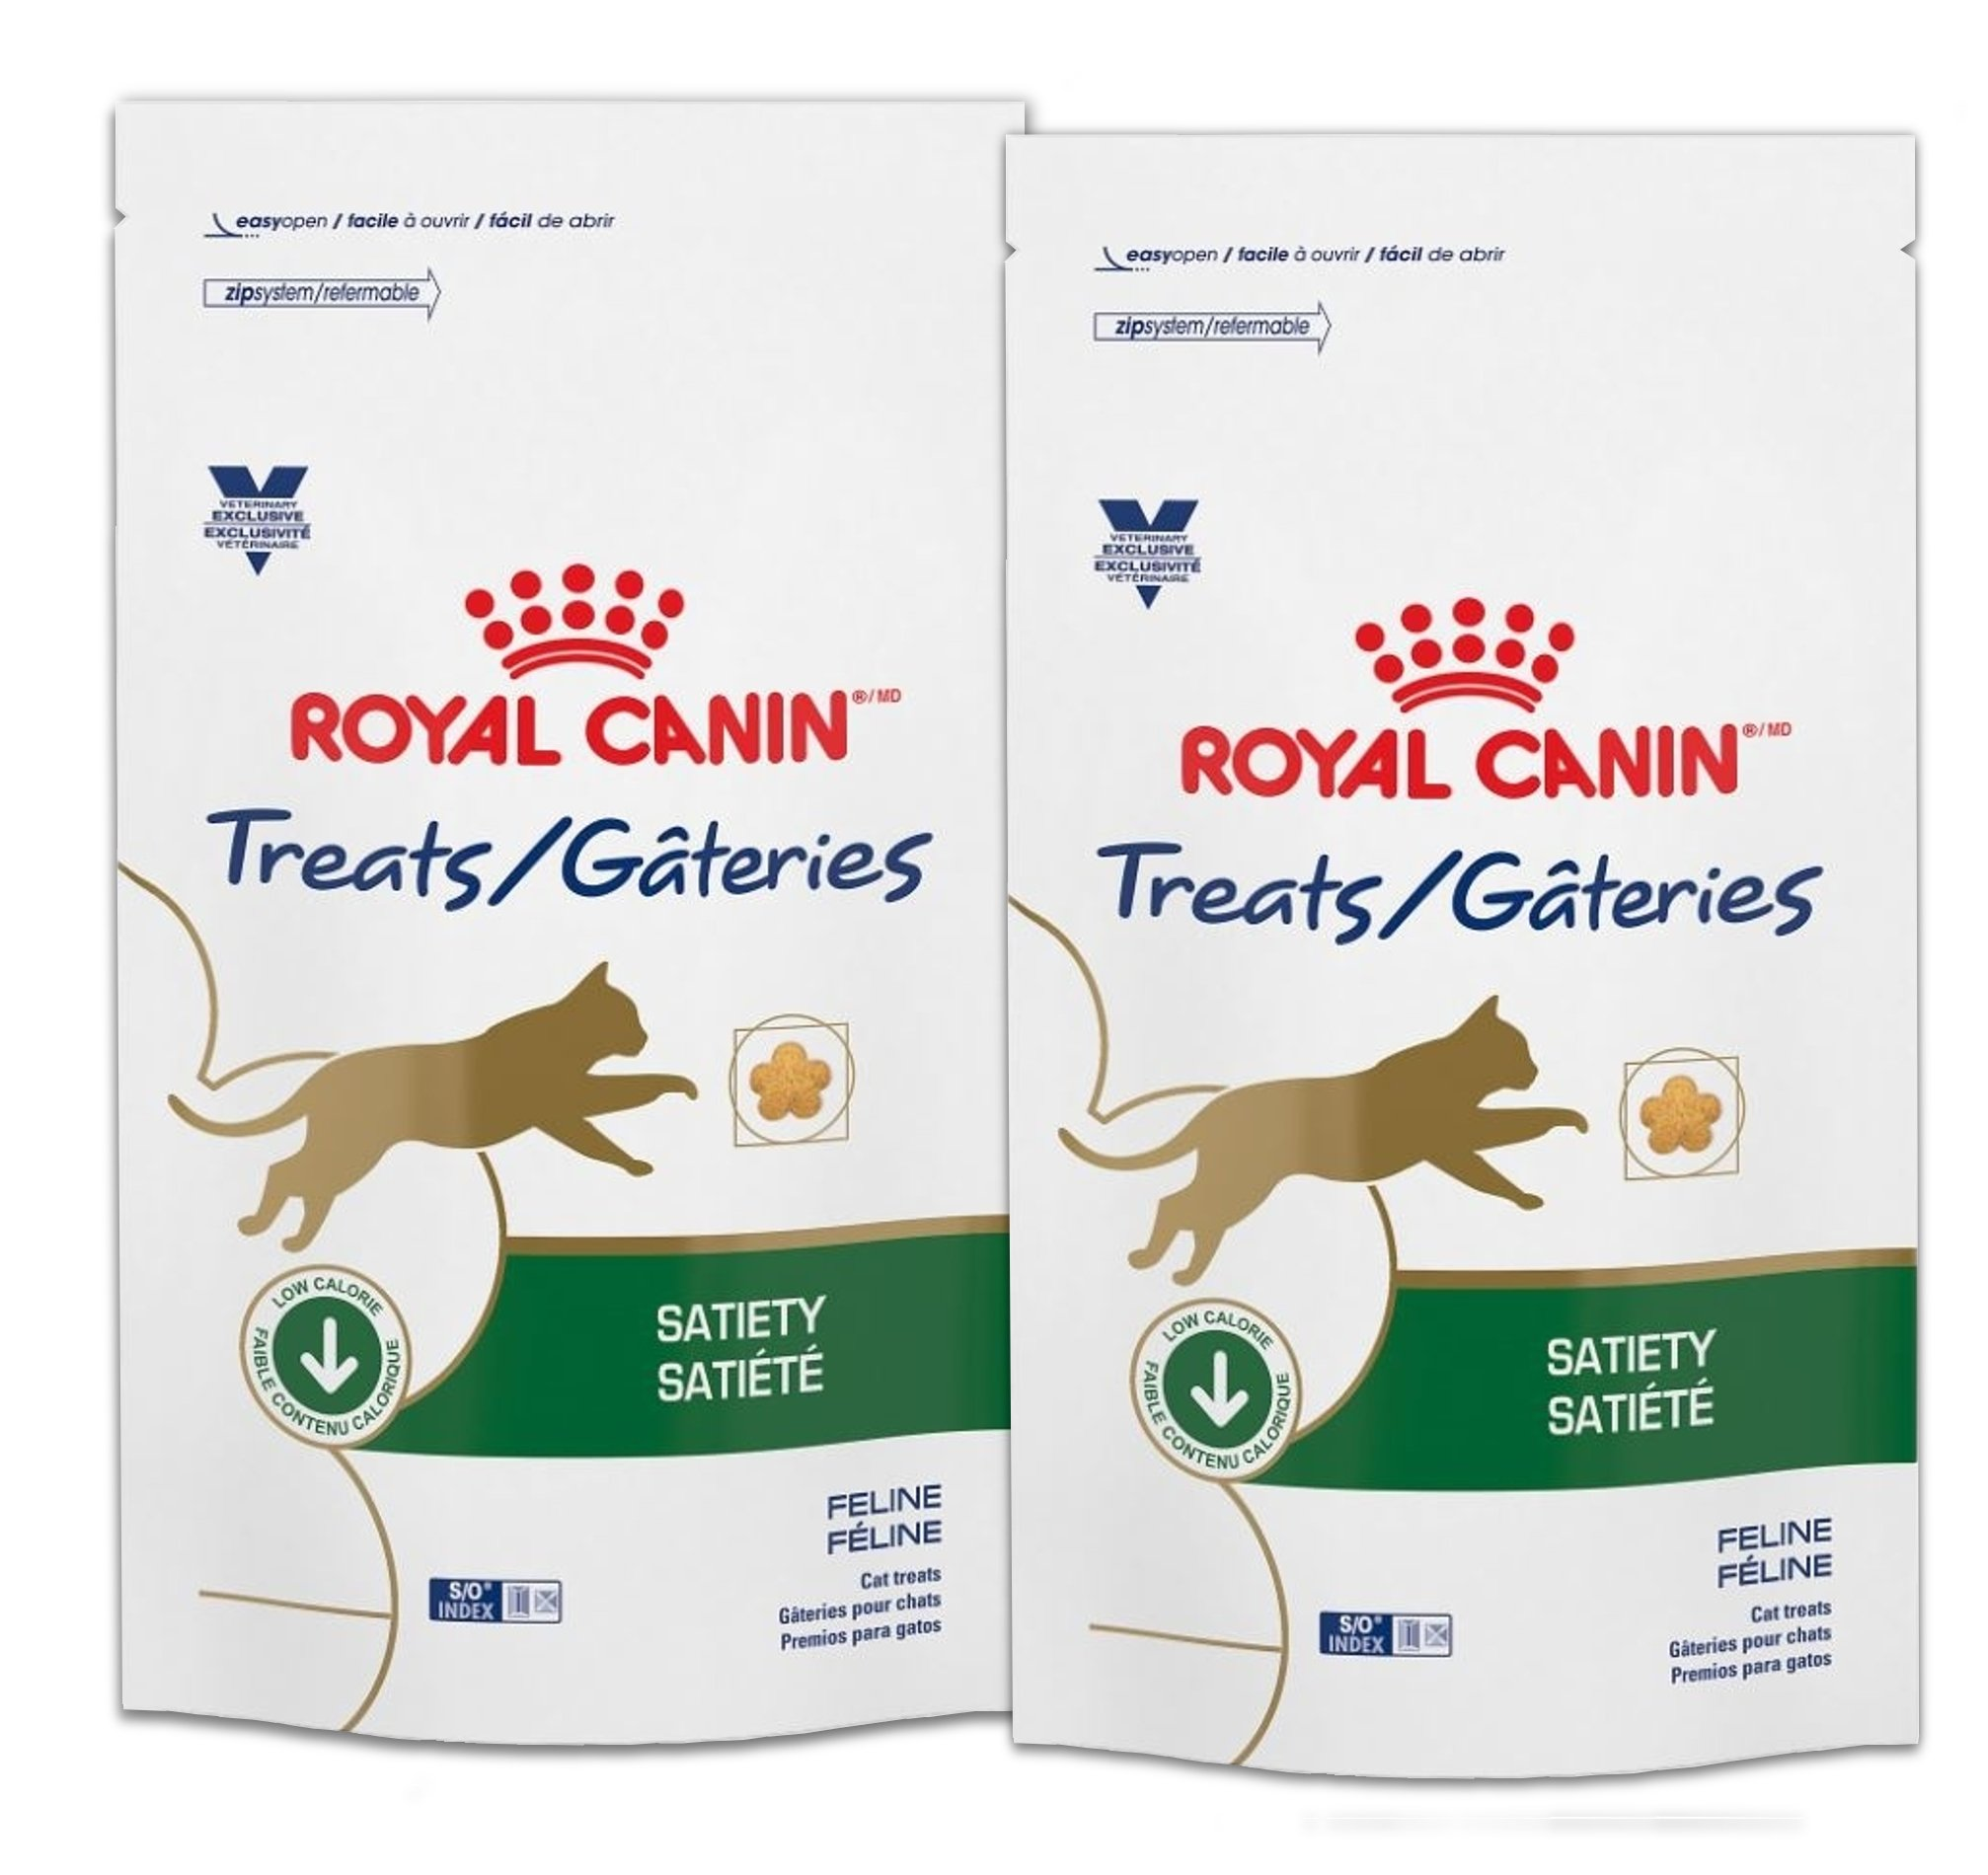 Royal Canin Veterinary Diet Satiety Feline Cat Treats 7.8 oz (2 bags) by Royal Canin (Image #1)